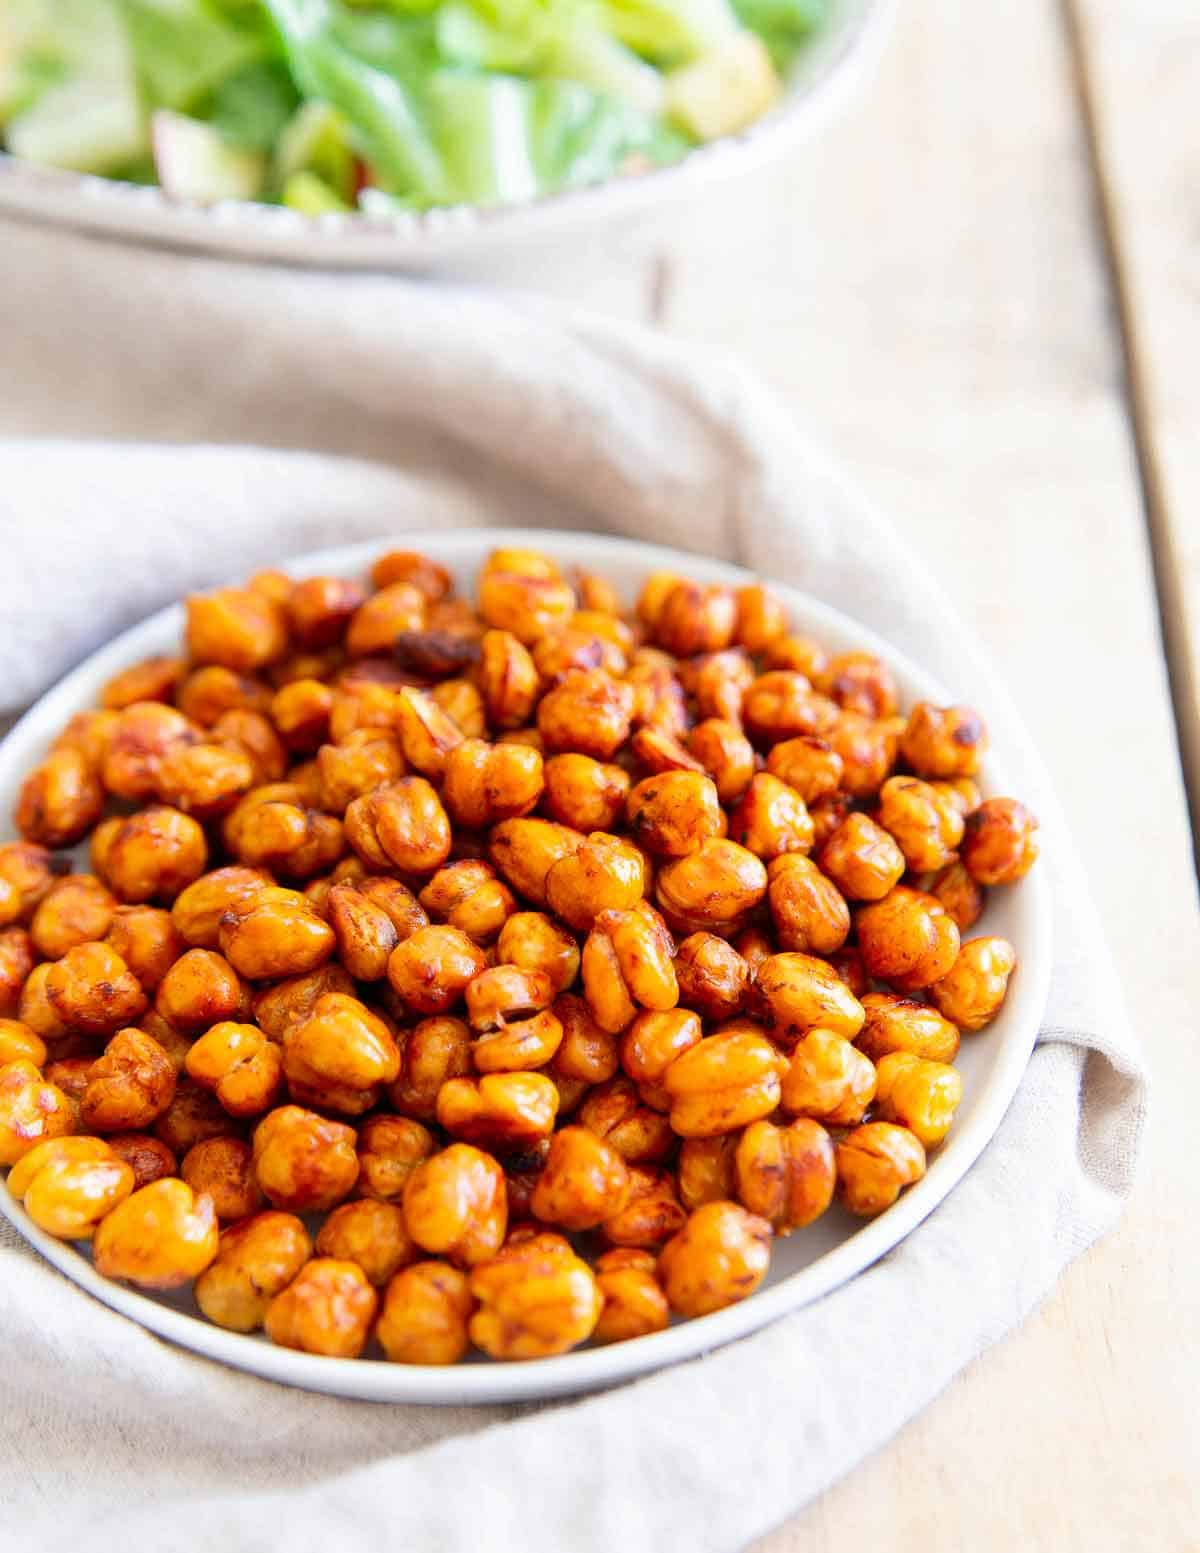 BBQ sauce and this simple roasting method results in these super easy BBQ chickpeas - perfect for snacking!